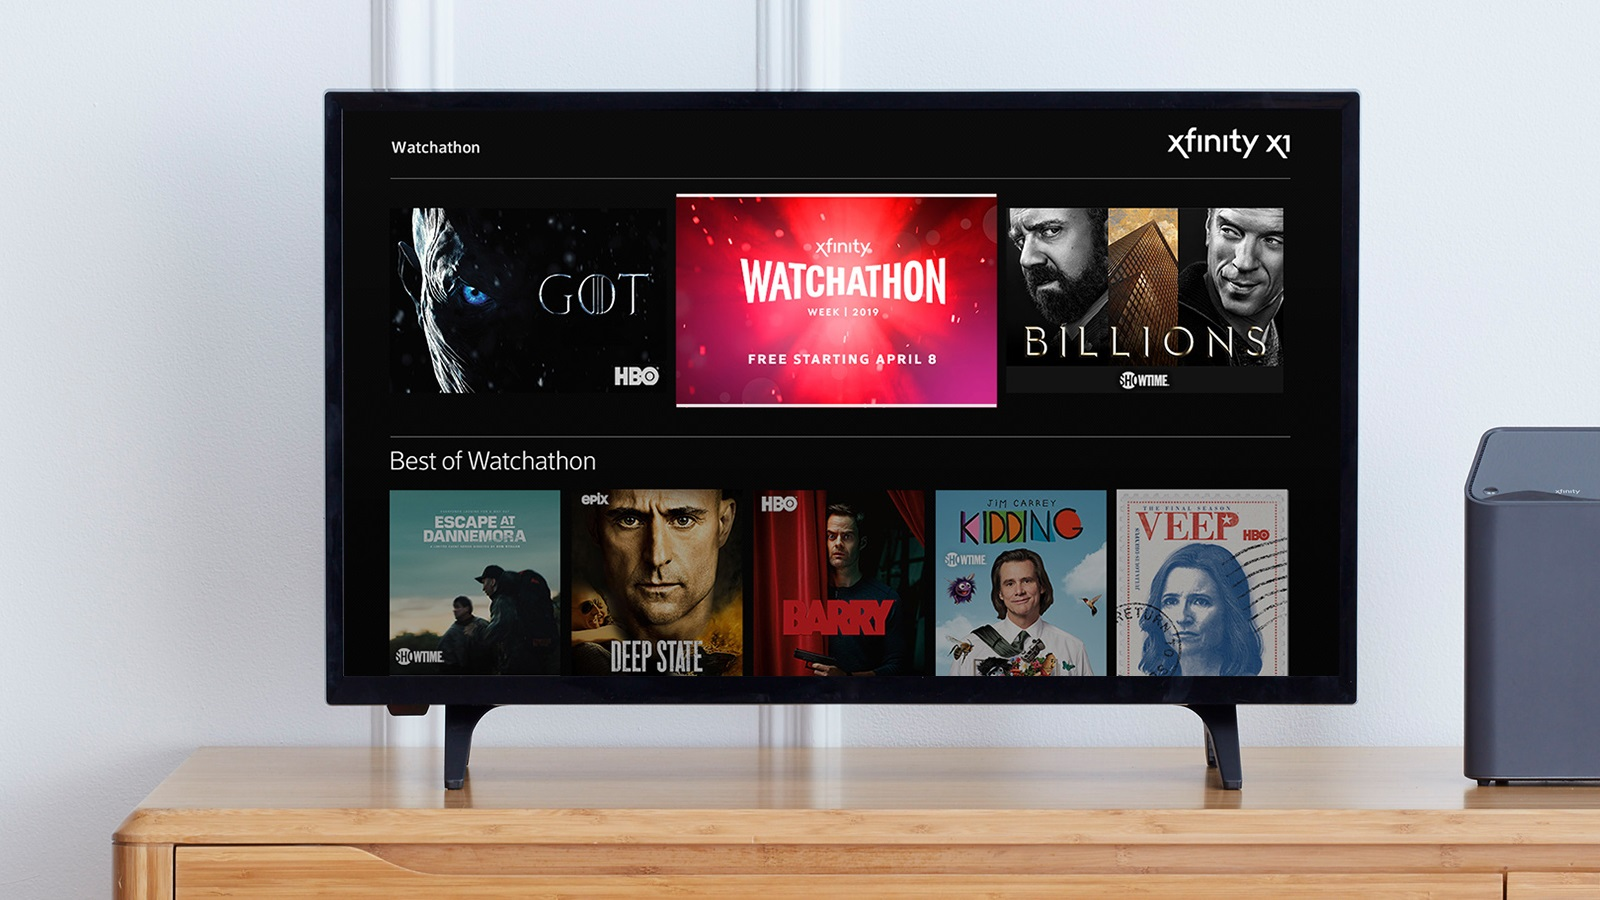 The Xfinity X1 Watchathon hub is displayed on a TV.